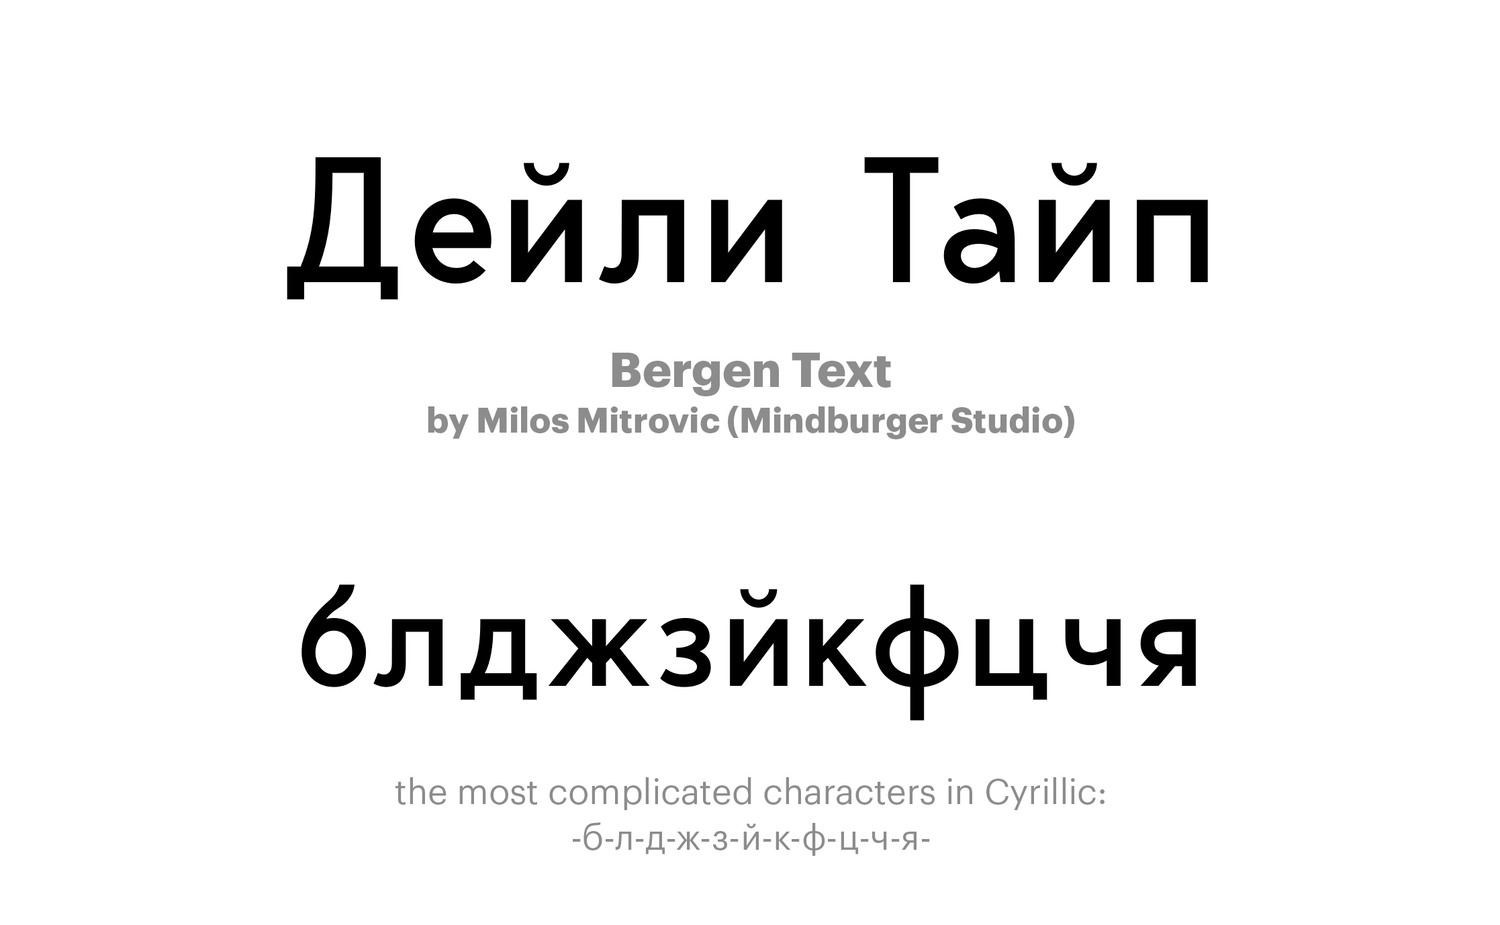 Bergen-Text-by-Milos-Mitrovic-(Mindburger-Studio)